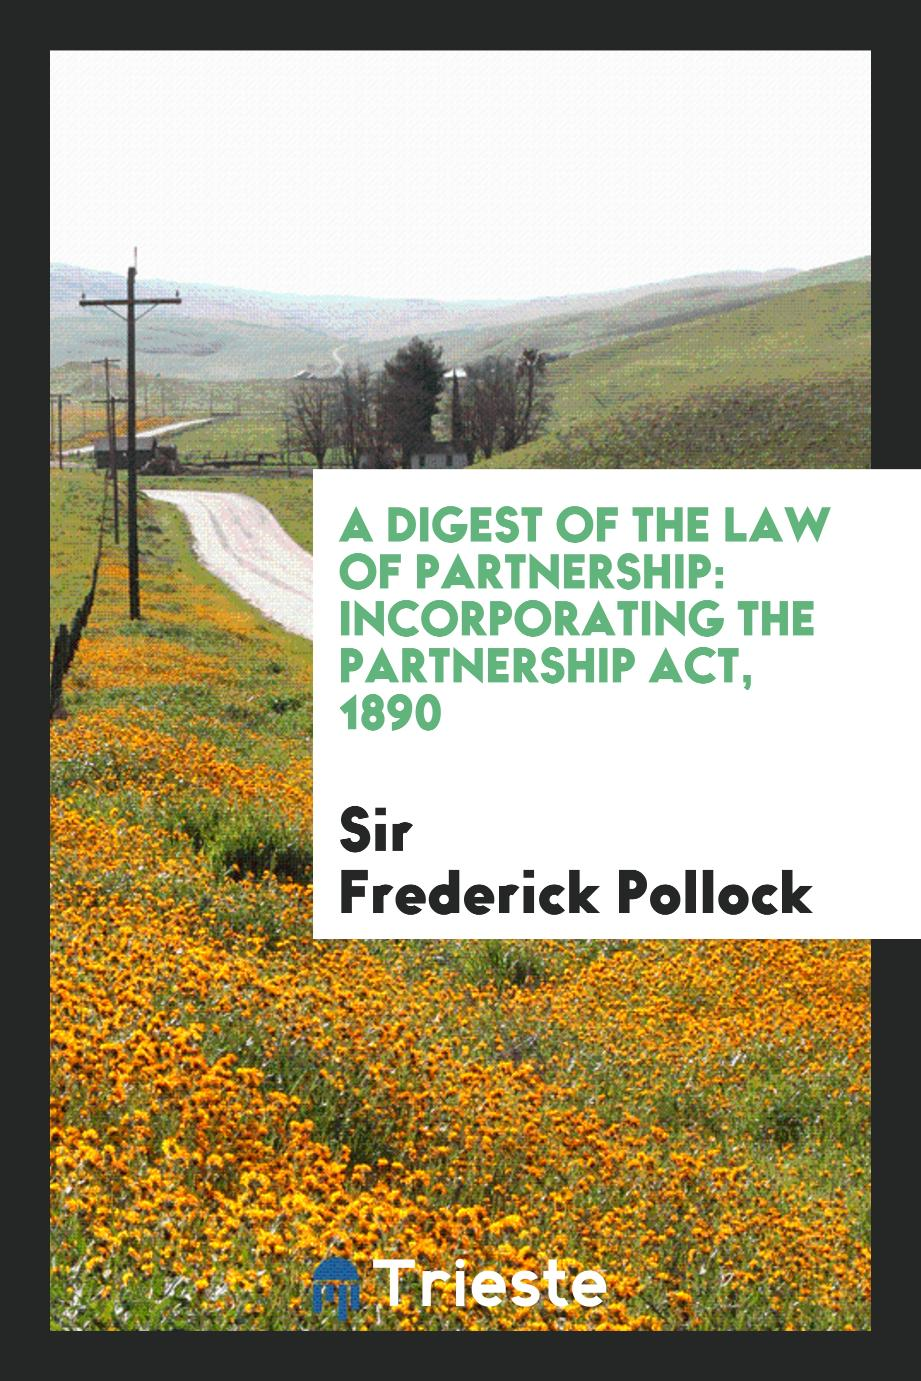 A Digest of the Law of Partnership: Incorporating the Partnership Act, 1890